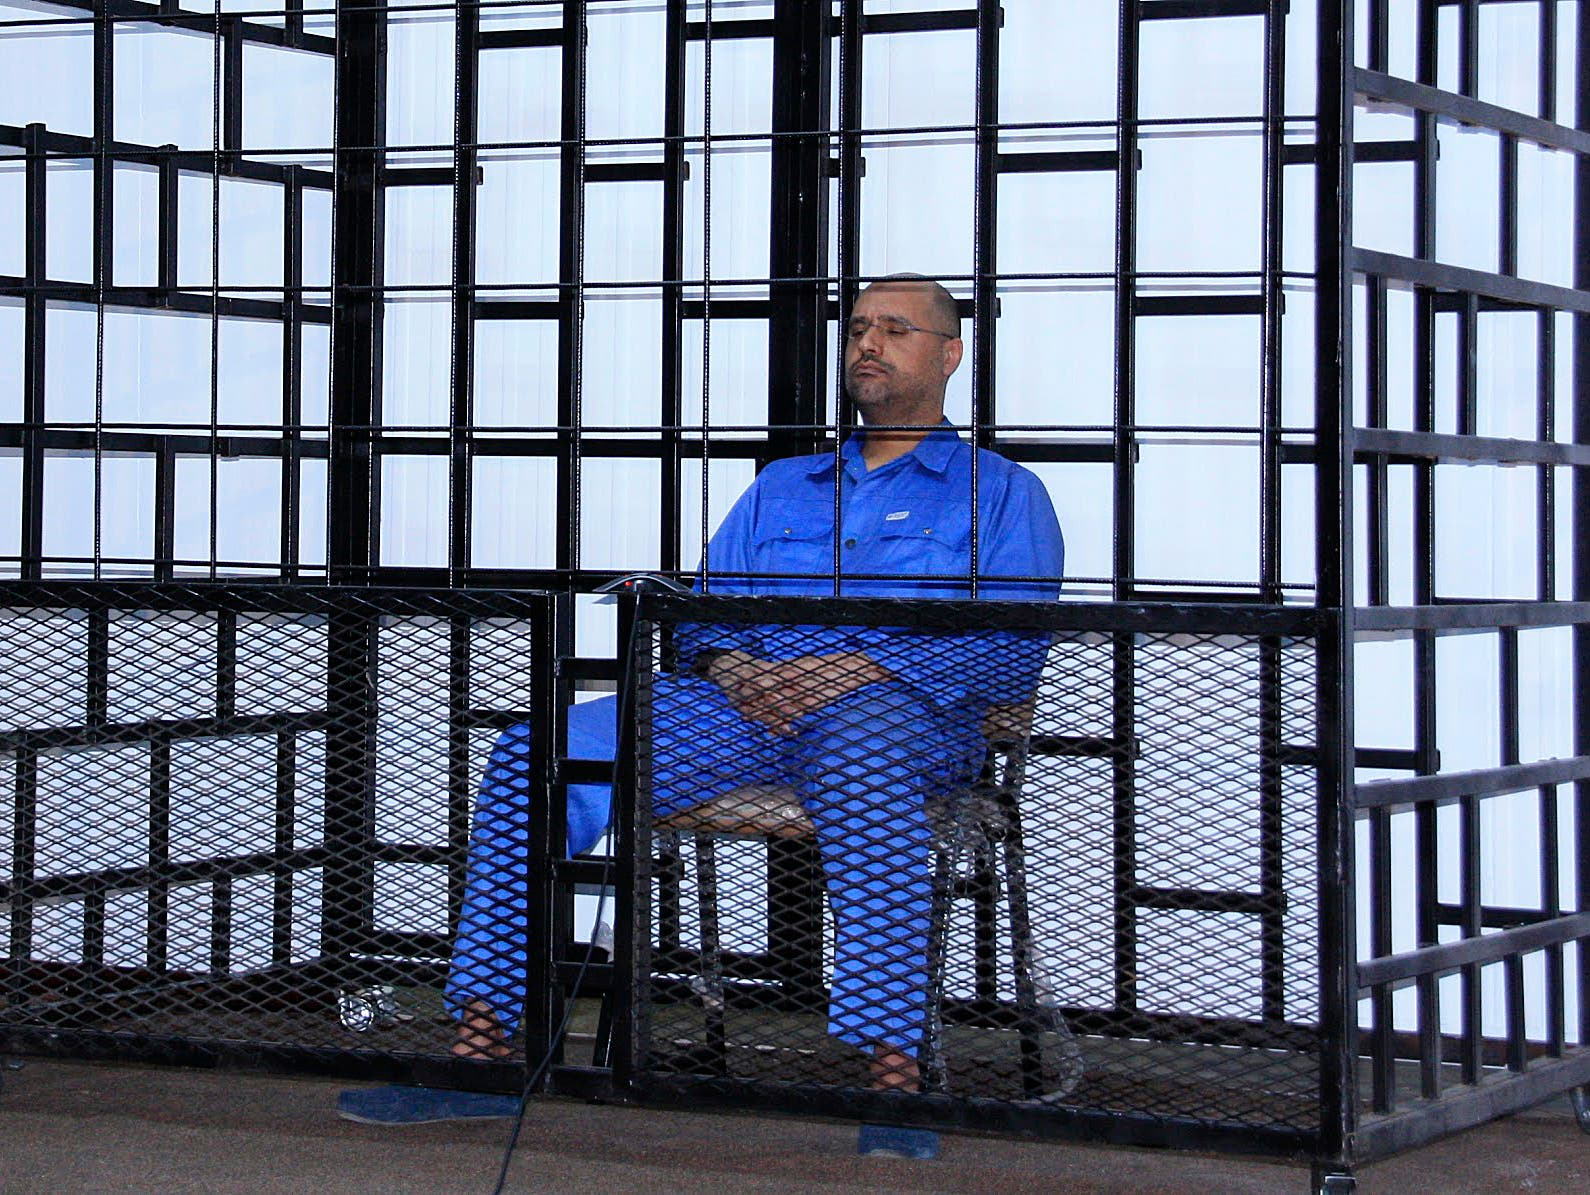 Saif al-Islam Qaddafi, son of late Libyan leader Muammar Gaddafi, attends a hearing behind bars in a courtroom in Zintan May 25, 2014. (Reuters)